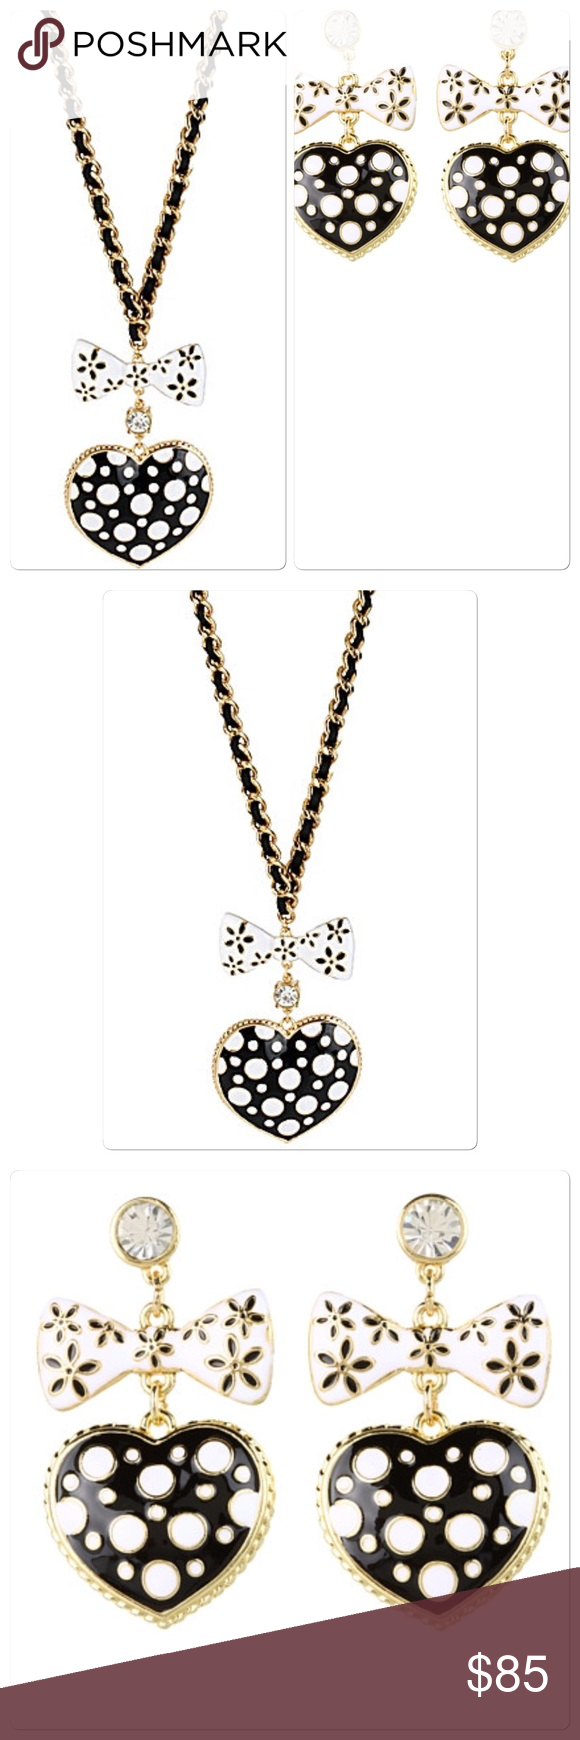 Betsey johnson necklace and earrings nwt betsey johnson and black gold